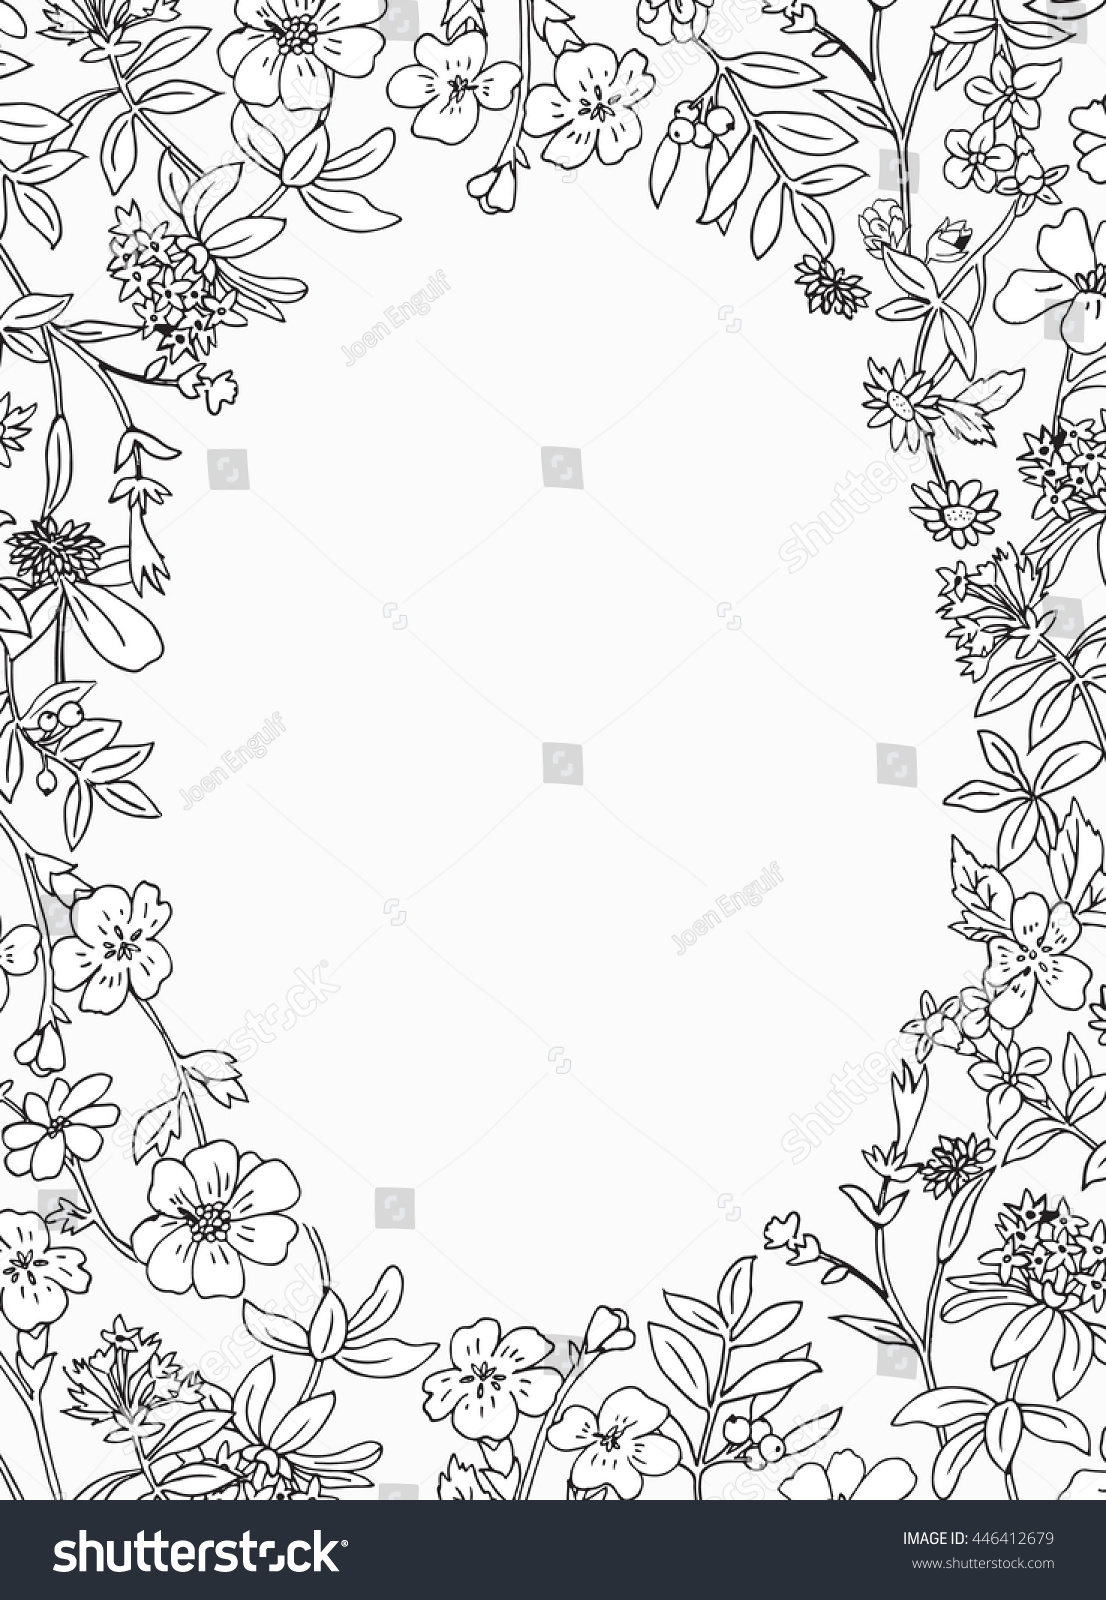 Secret Meadow Garden Floral Pattern Adult Coloring Greeting Card